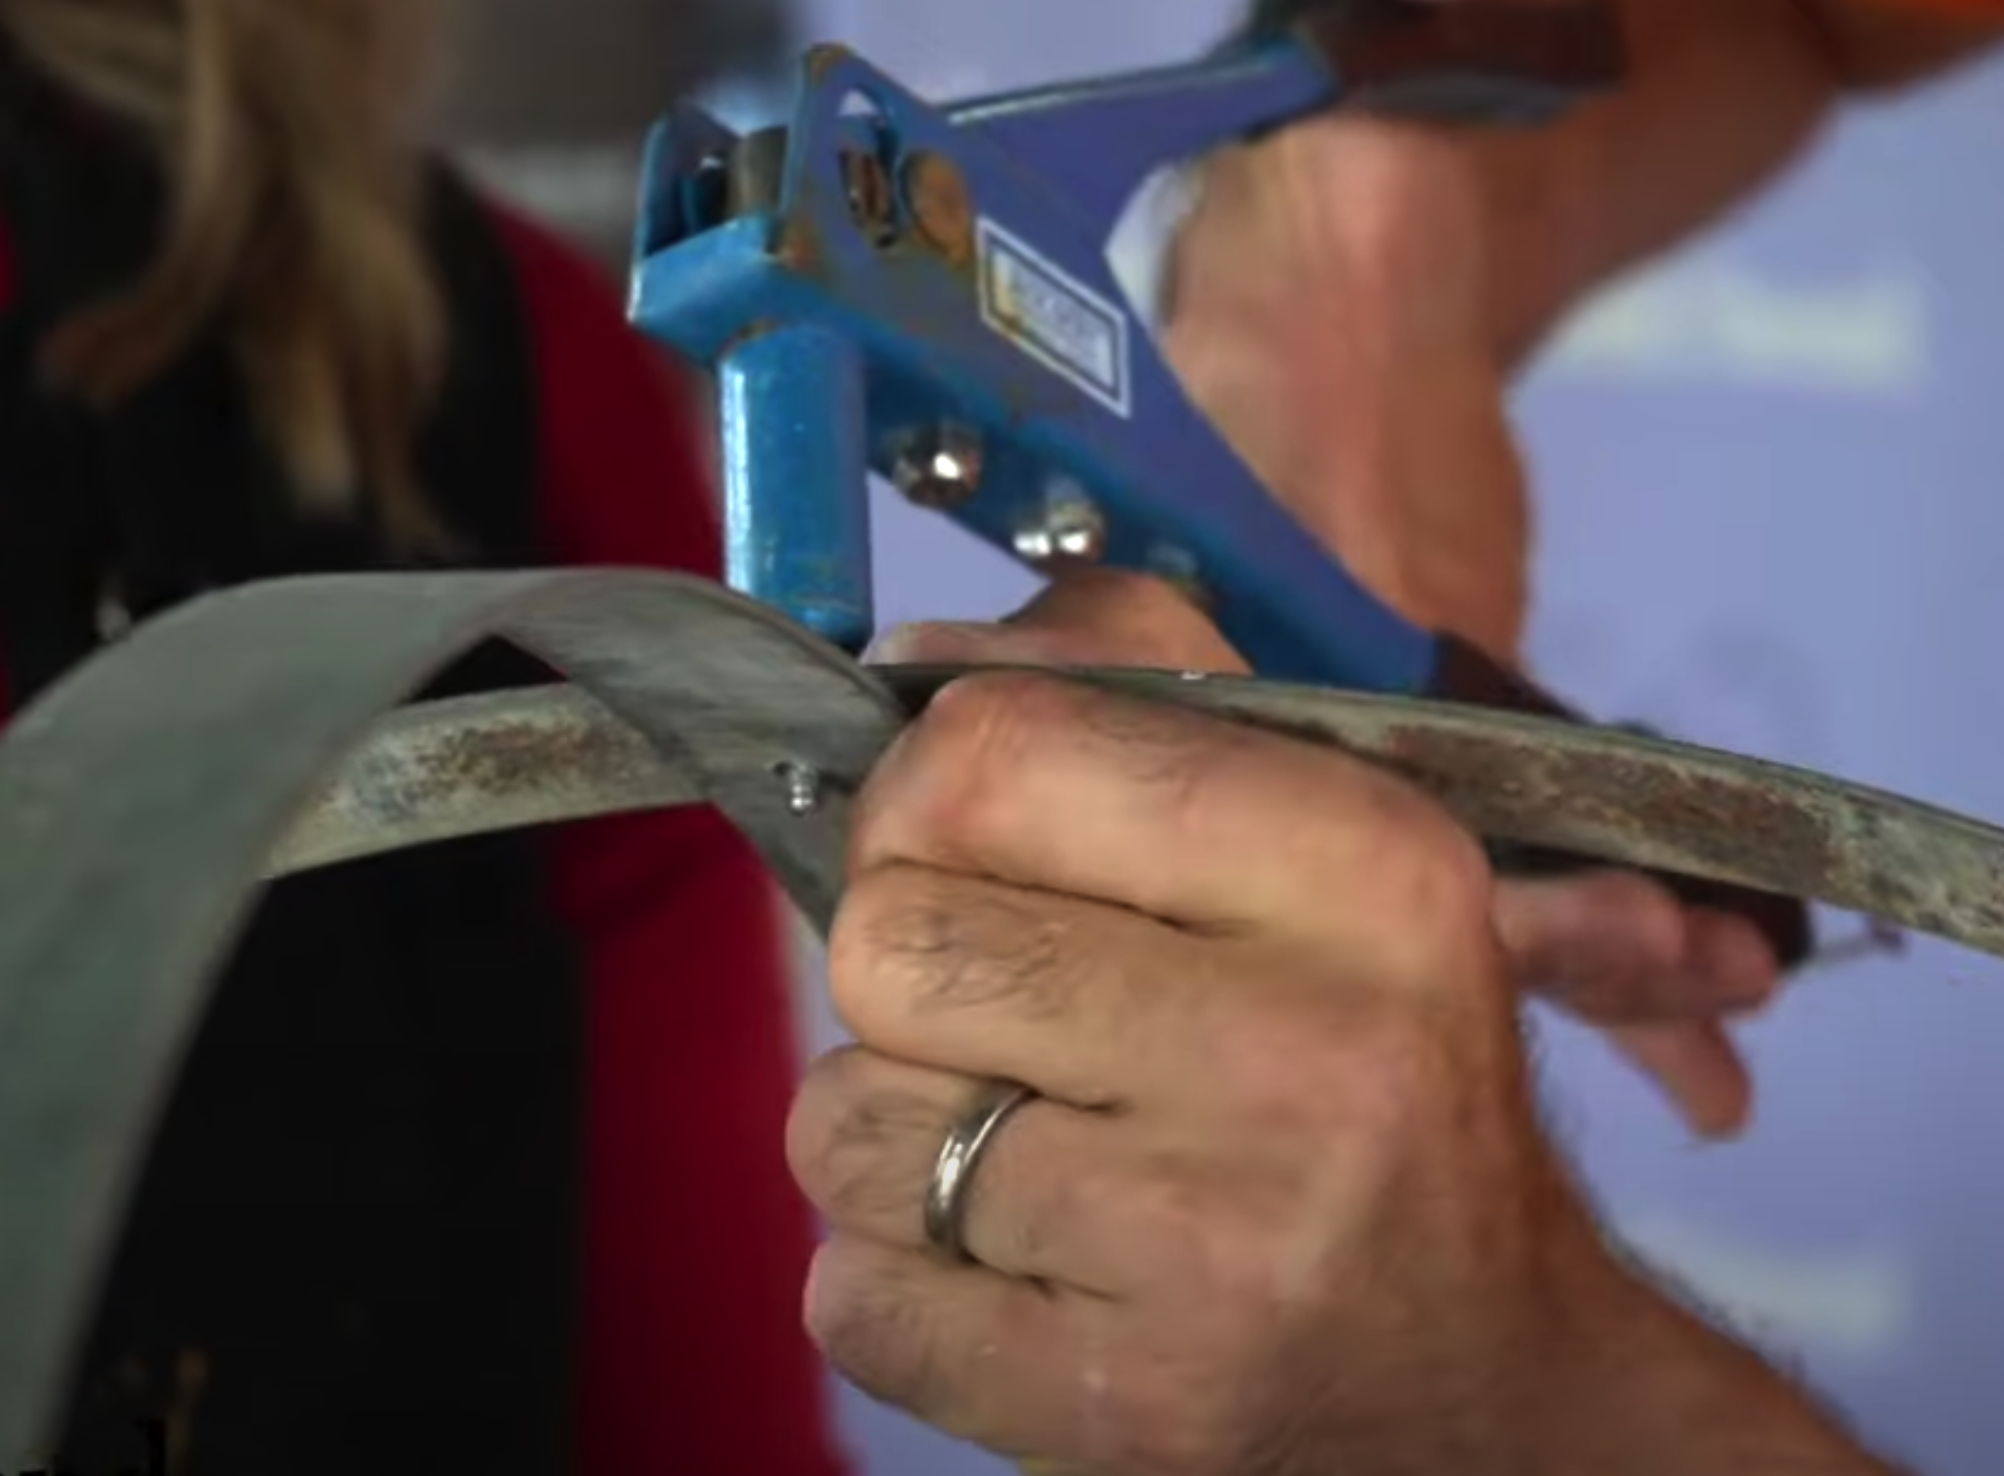 A rivet gun being used to join two barrel hoops together